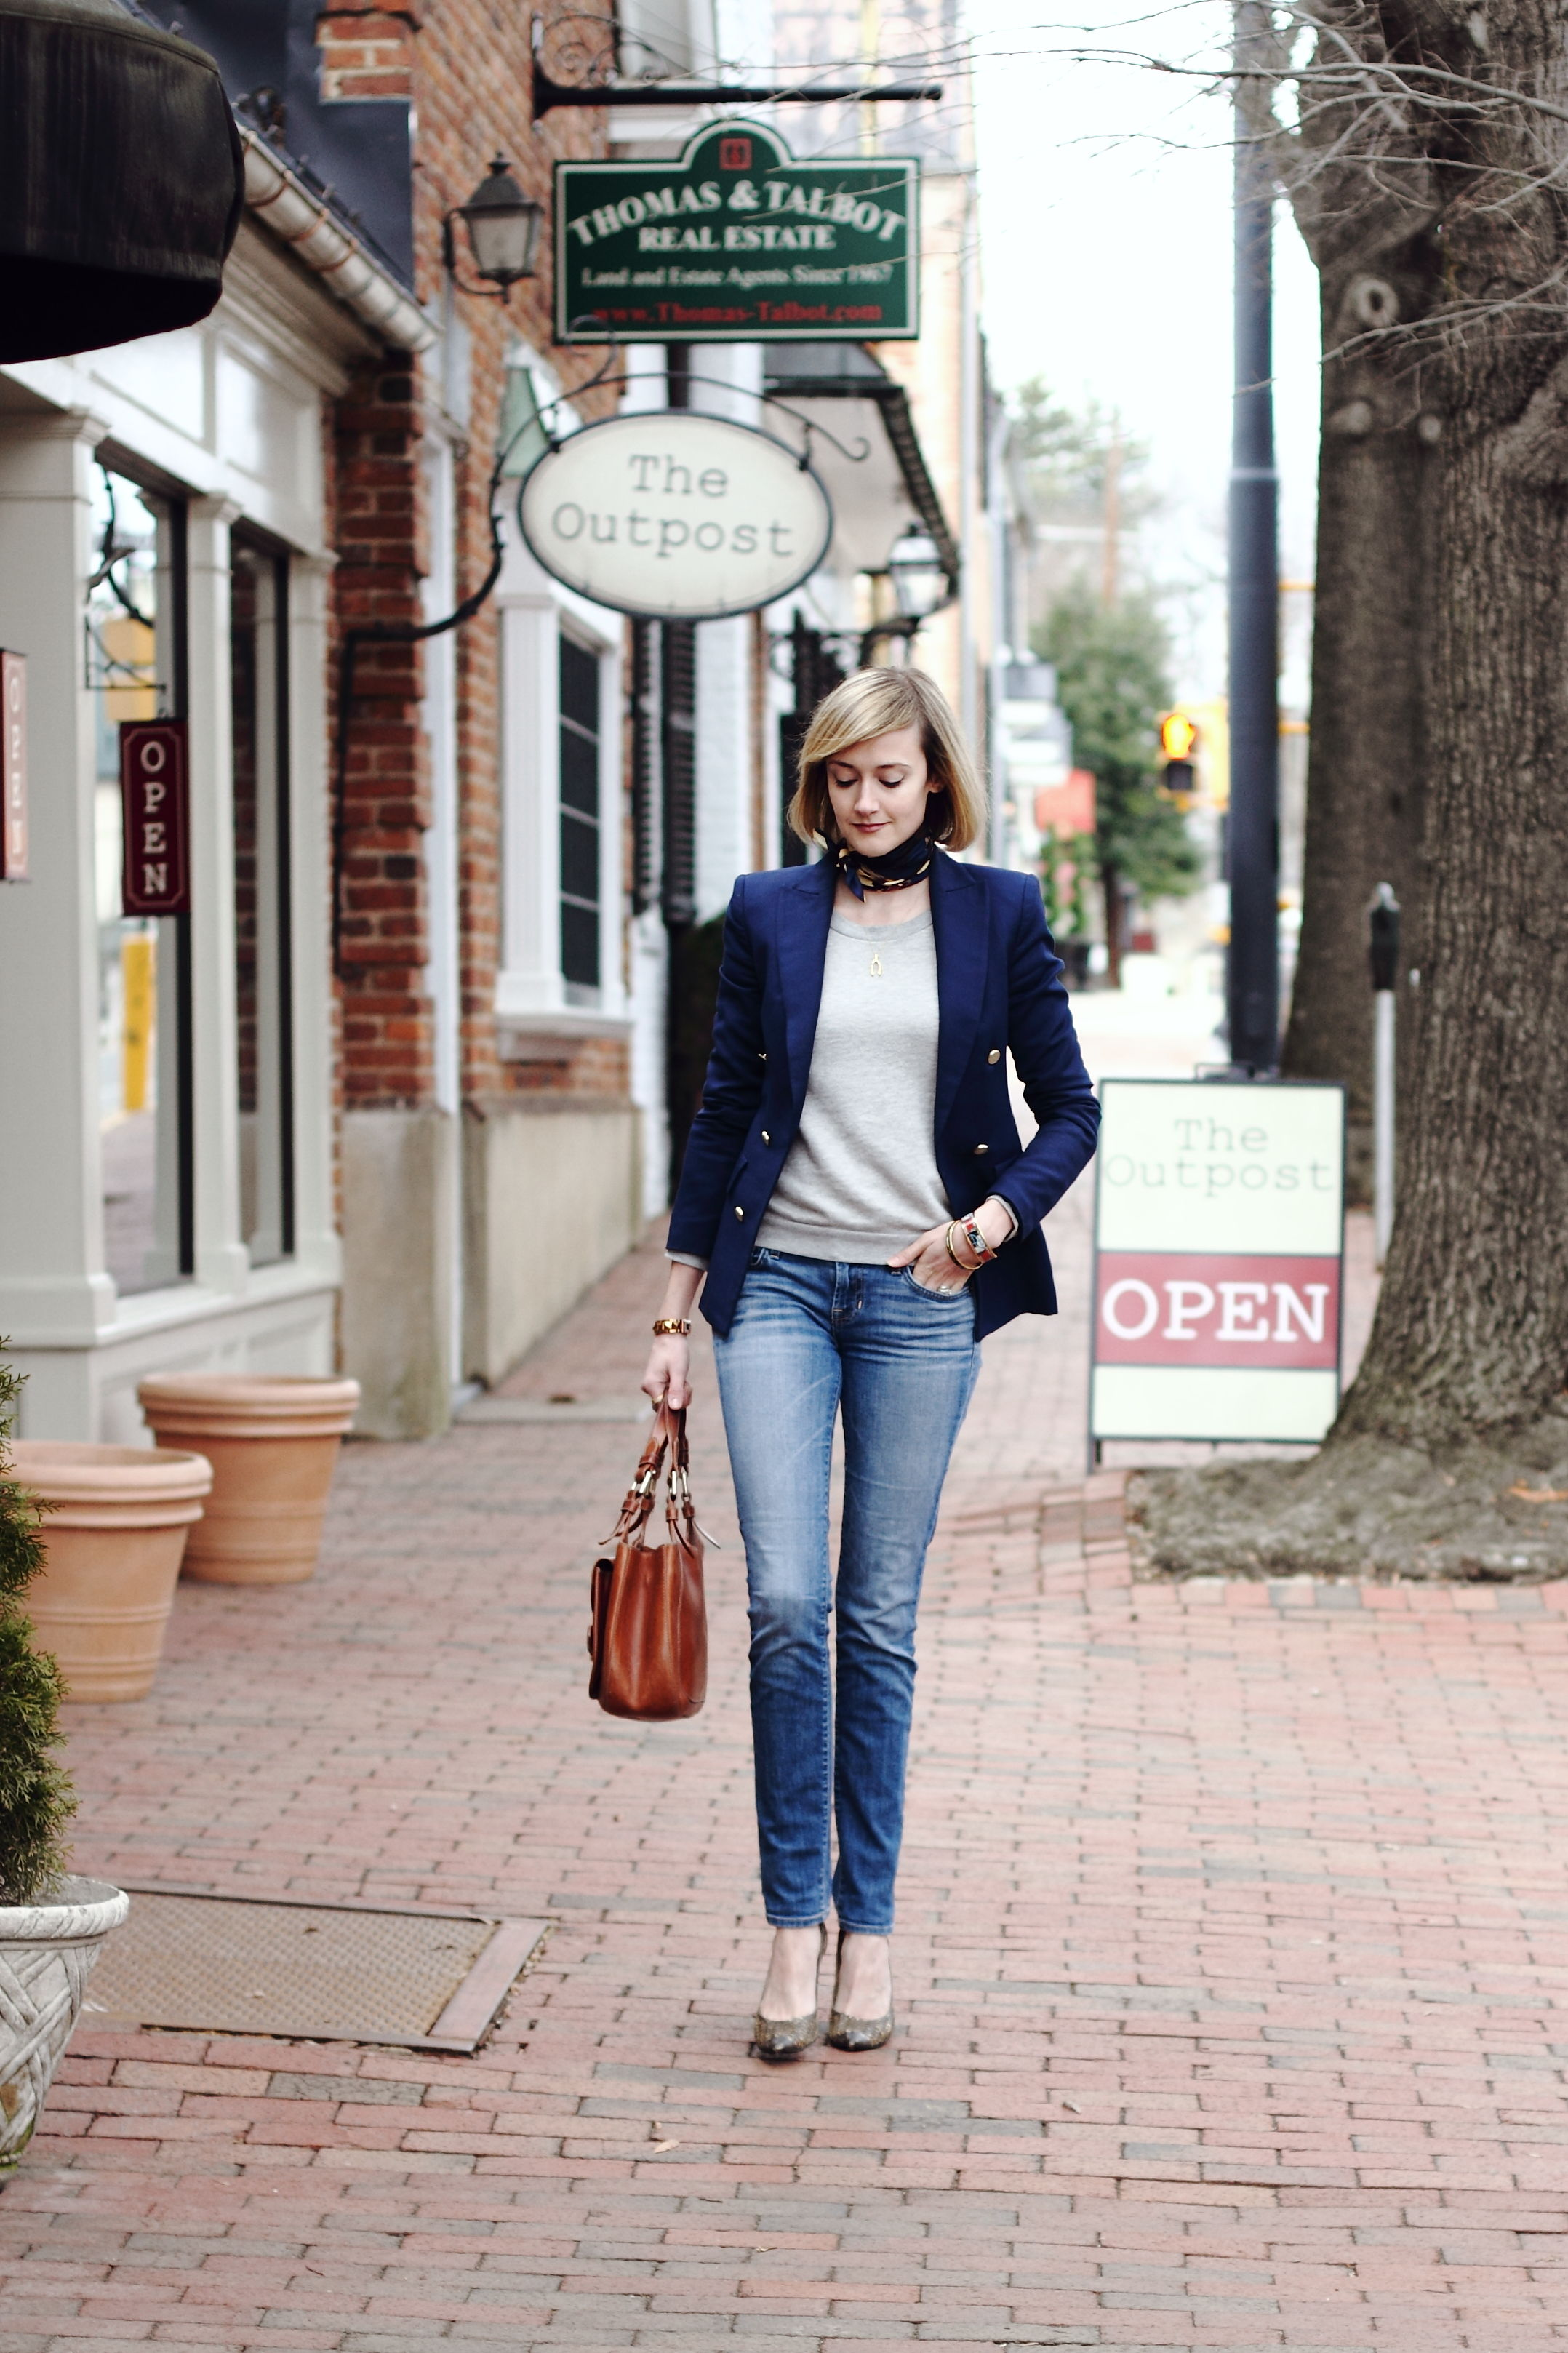 Afternoon Shopping in Middleburg, Virginia